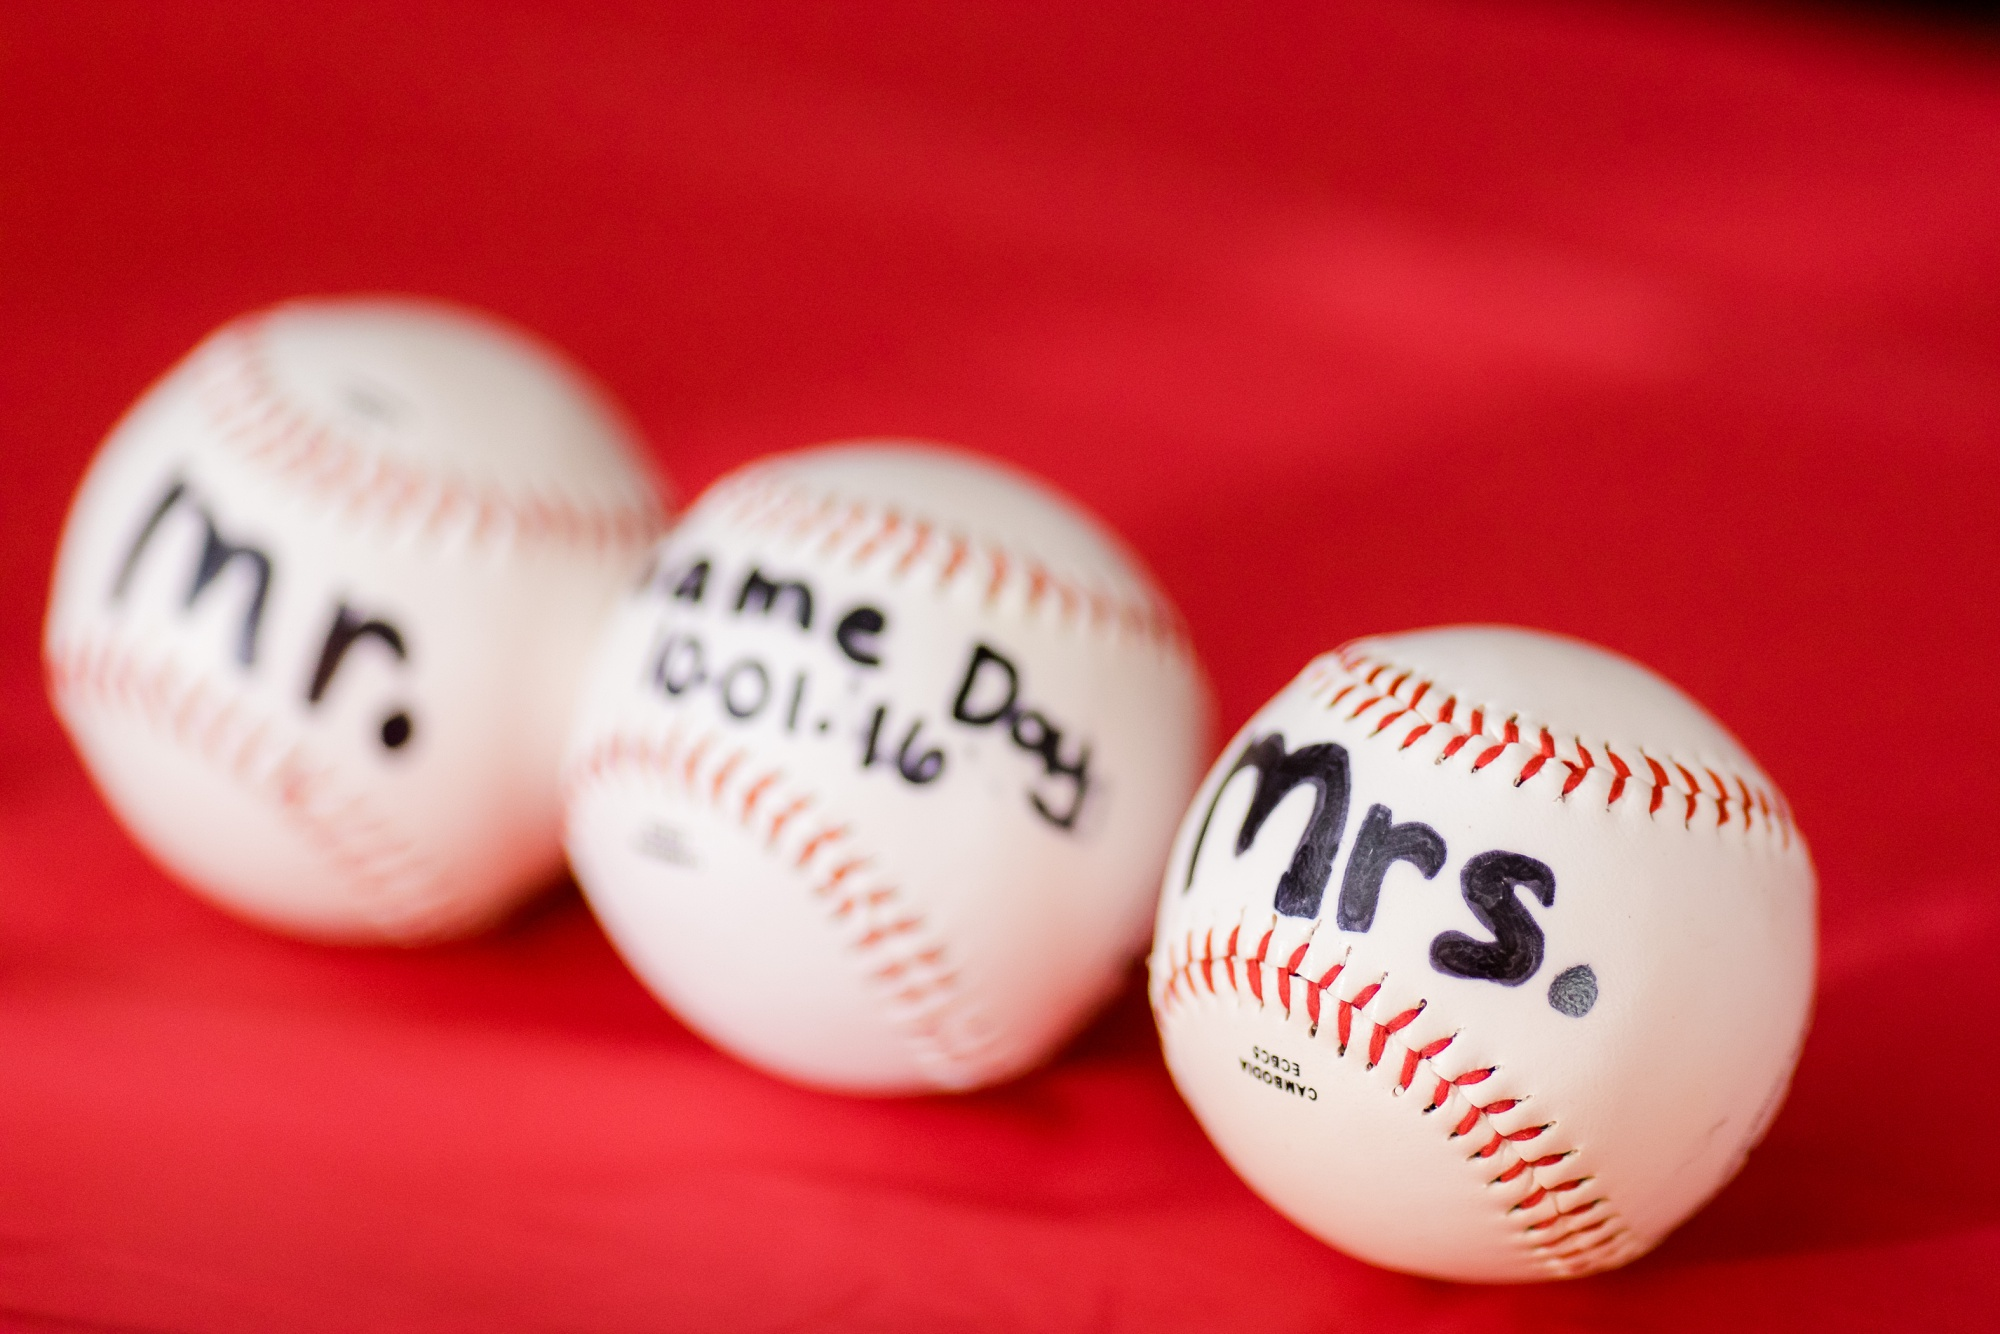 Baseball Themed Fall Wedding at Lake Eunice Evangelical Church and the Frazee, MN Event Center | Kay & Brandon